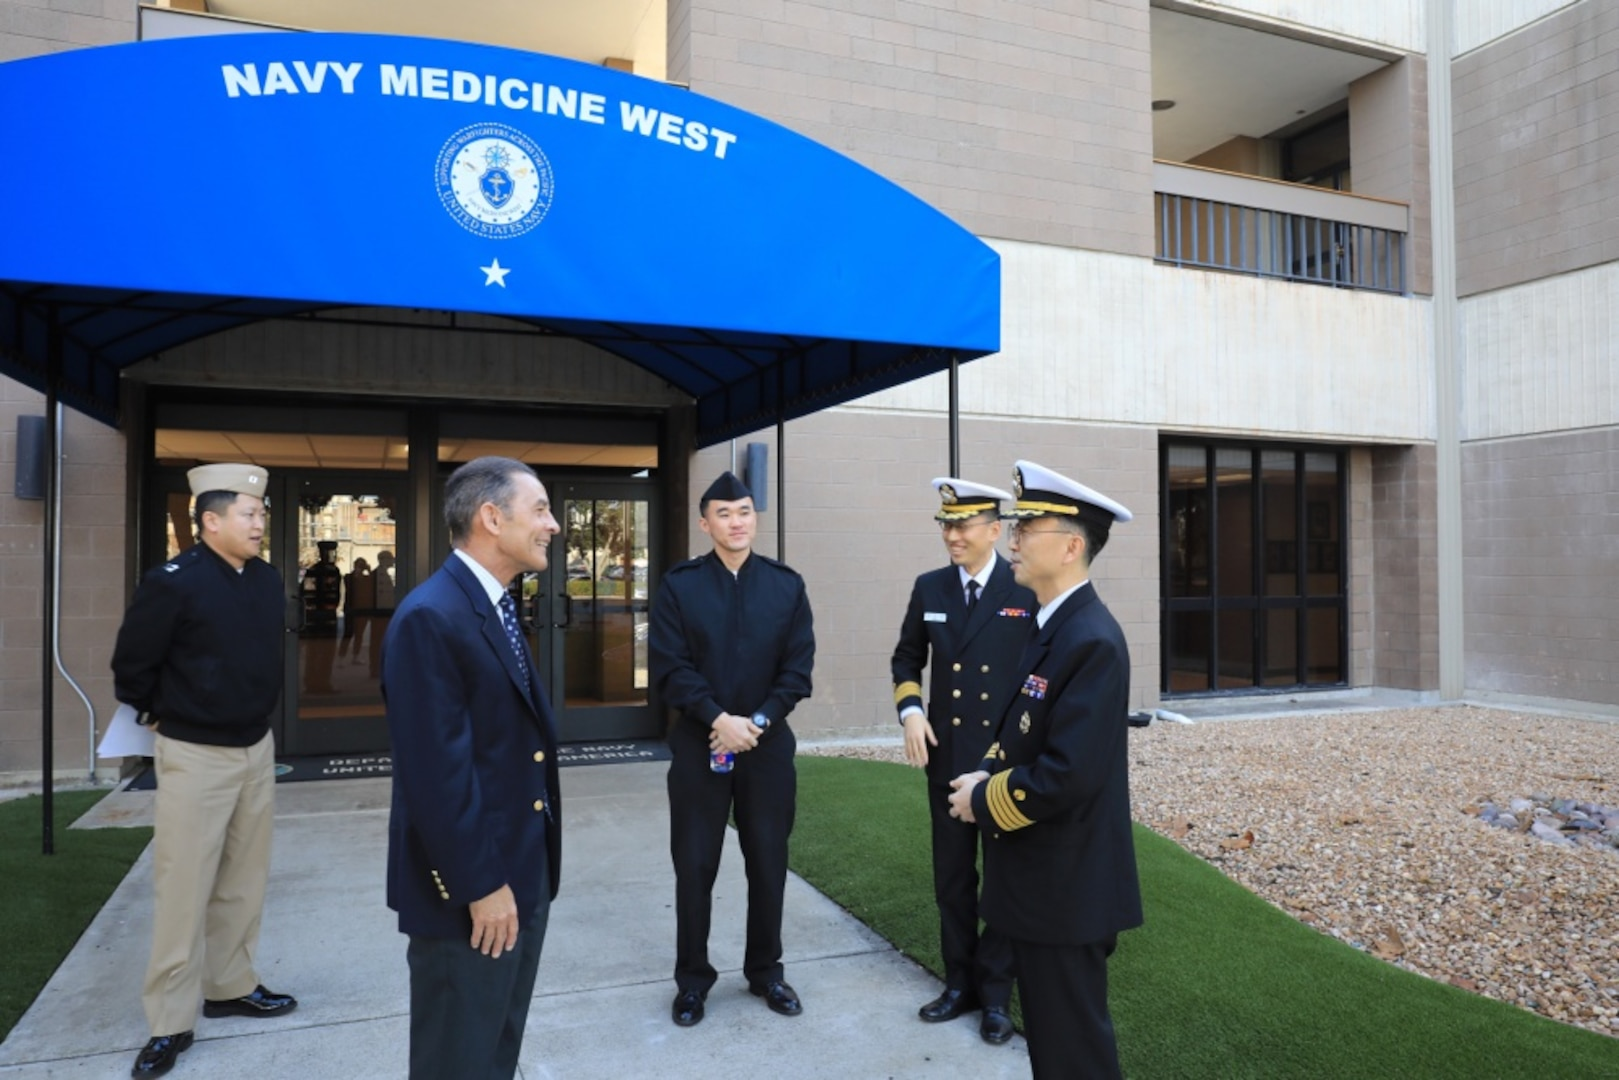 Republic of Korea Navy Surgeon General Visits Navy Medicine West